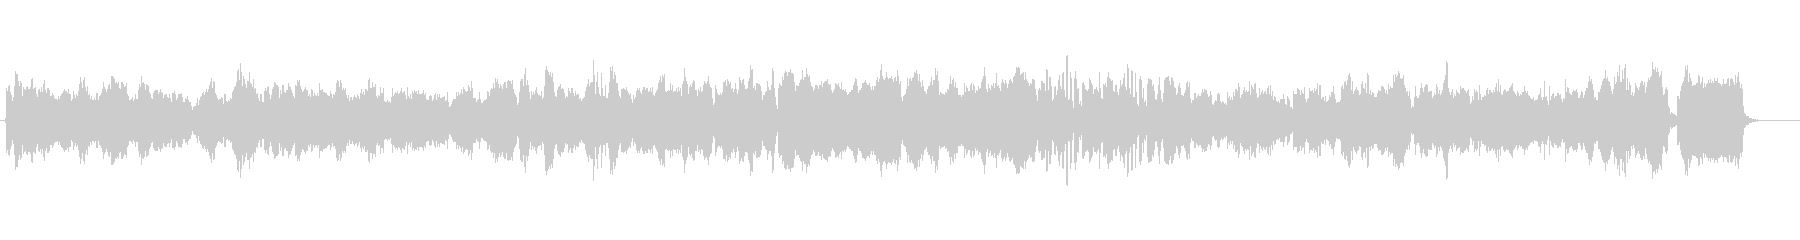 Dramatic music of live recorder's unreproduced waveform